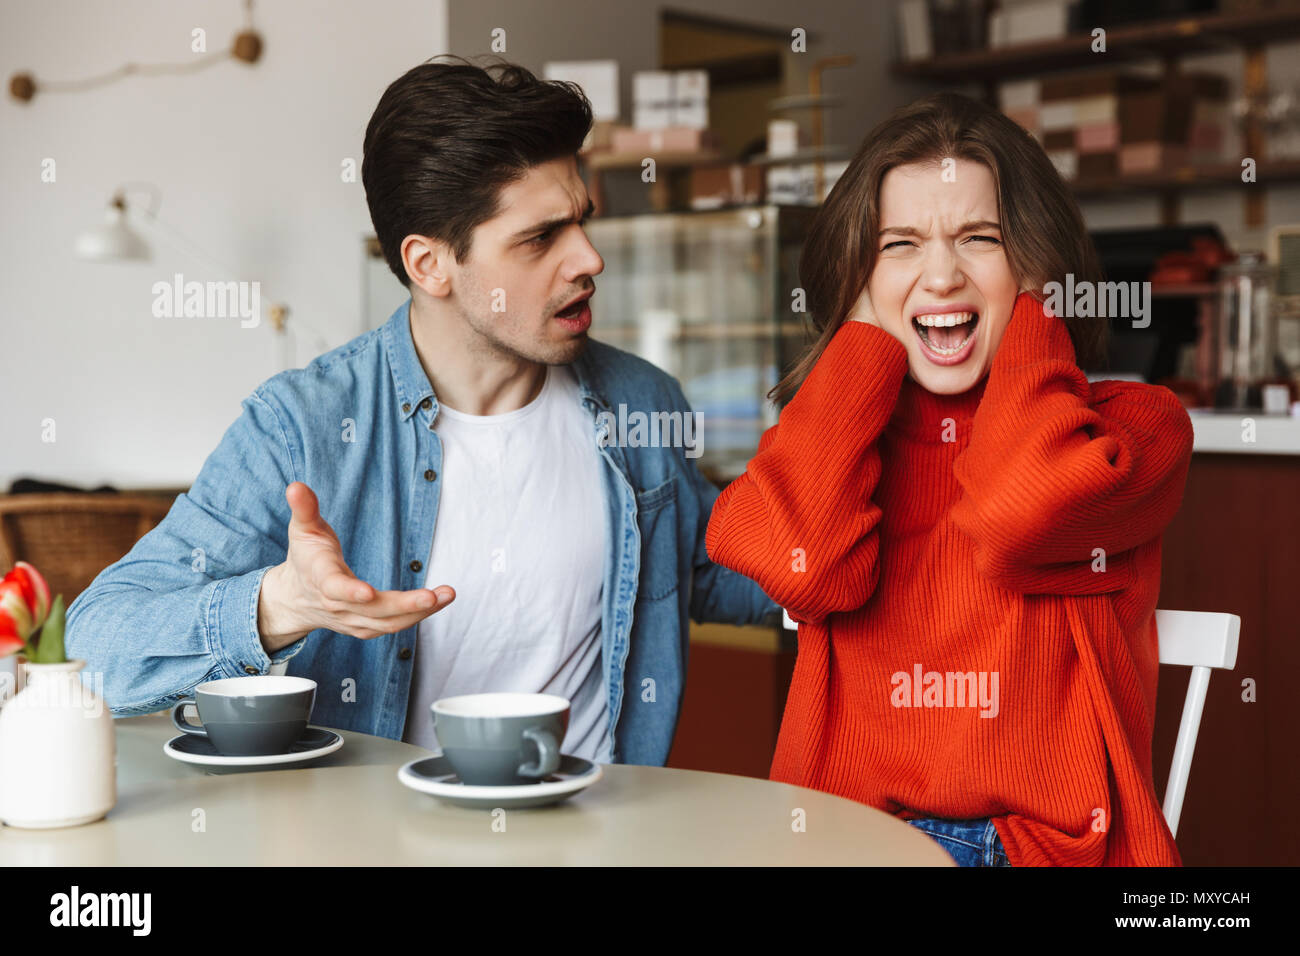 Disappointed couple woman and man 20s screaming and having quarrel while having coffee break in cafe - Stock Image